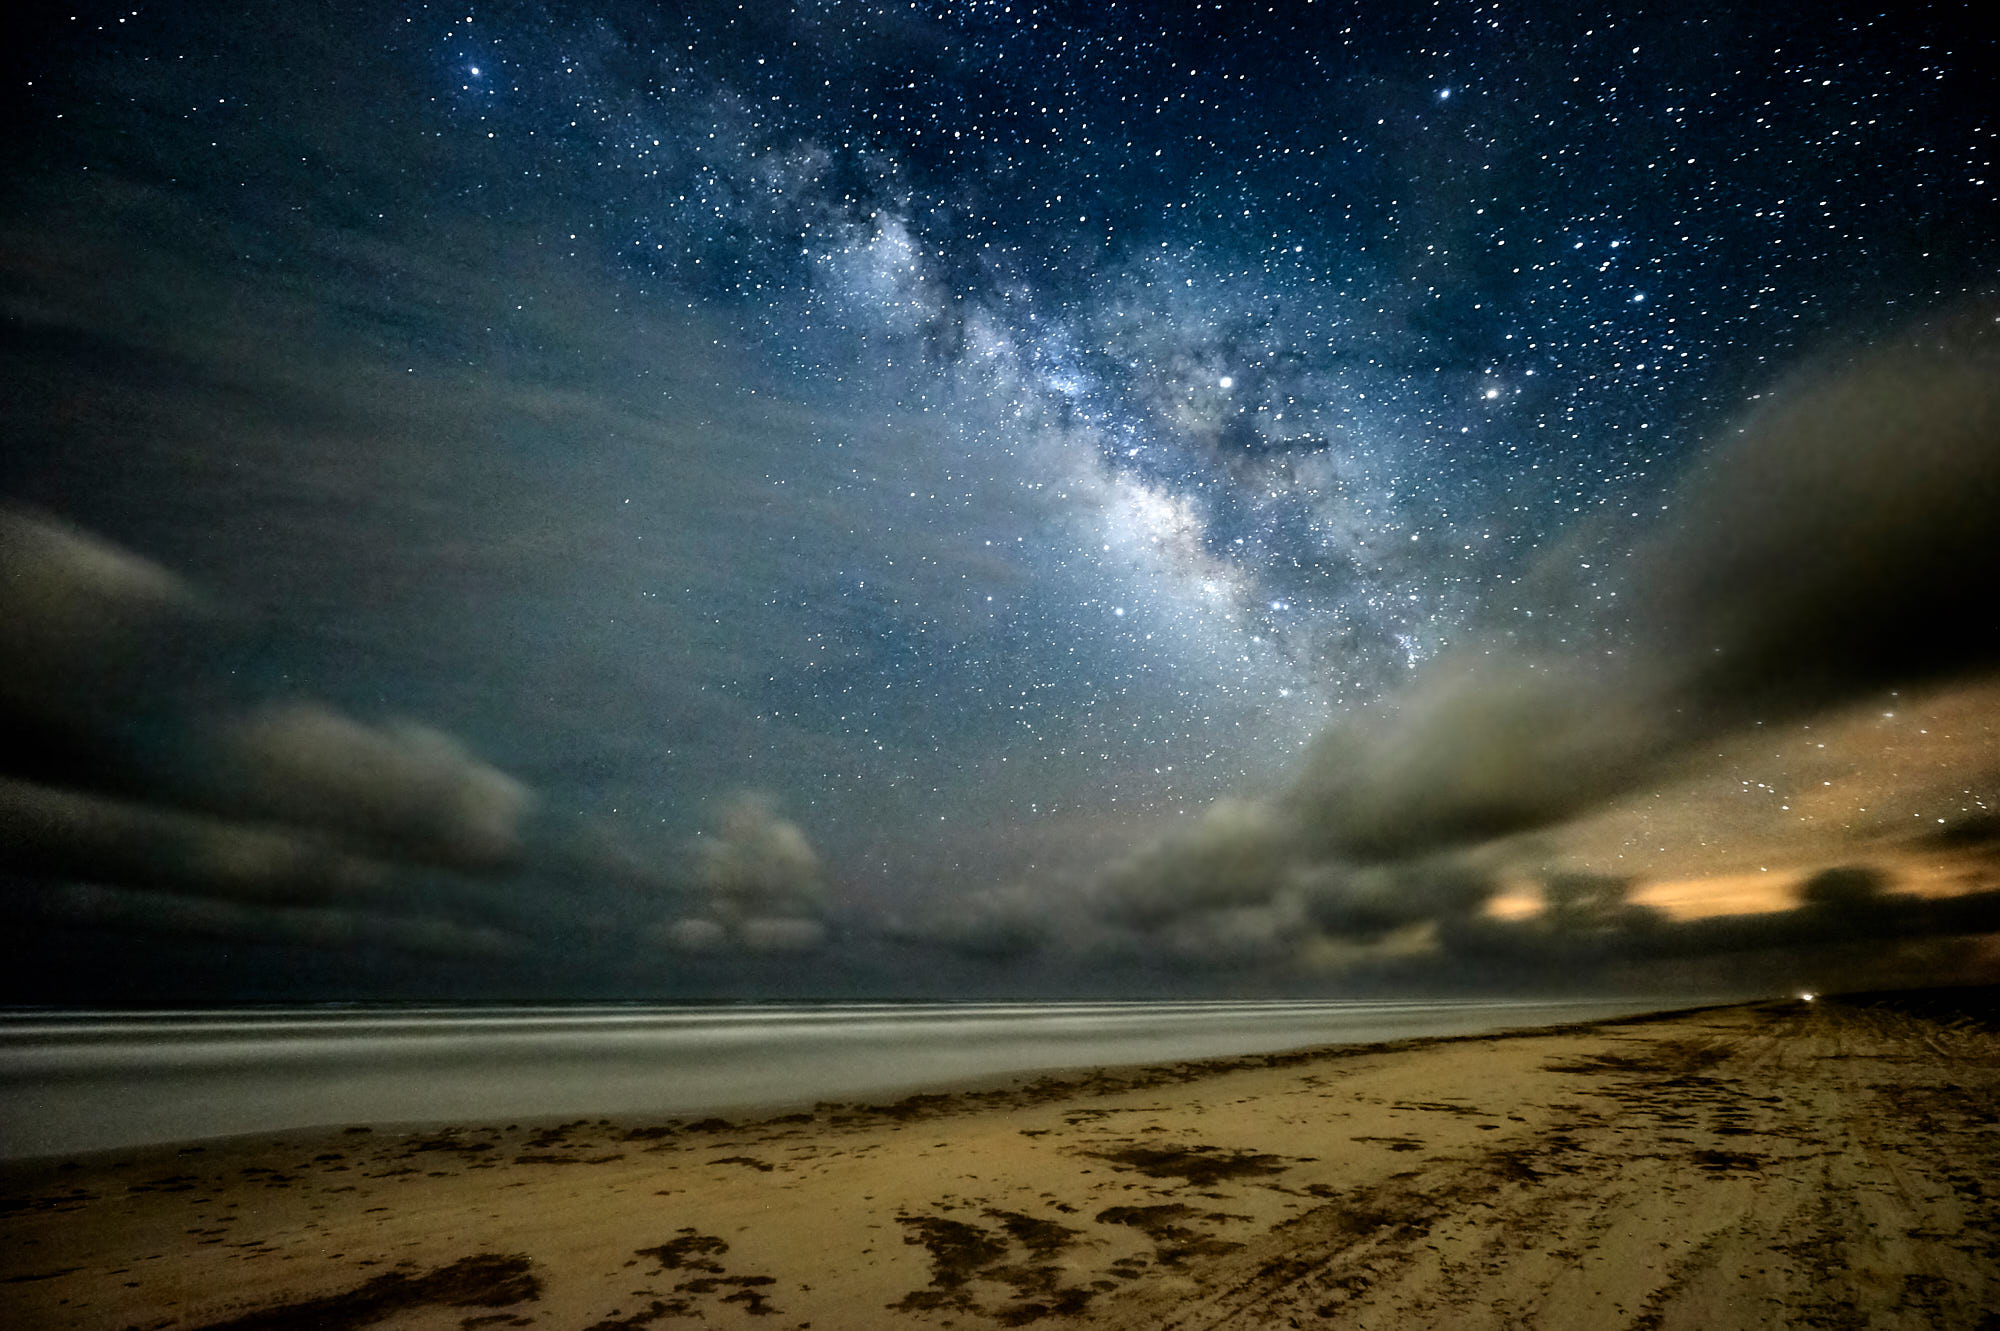 Milky Way Photo Edit using Affinity and Capture One - Photo